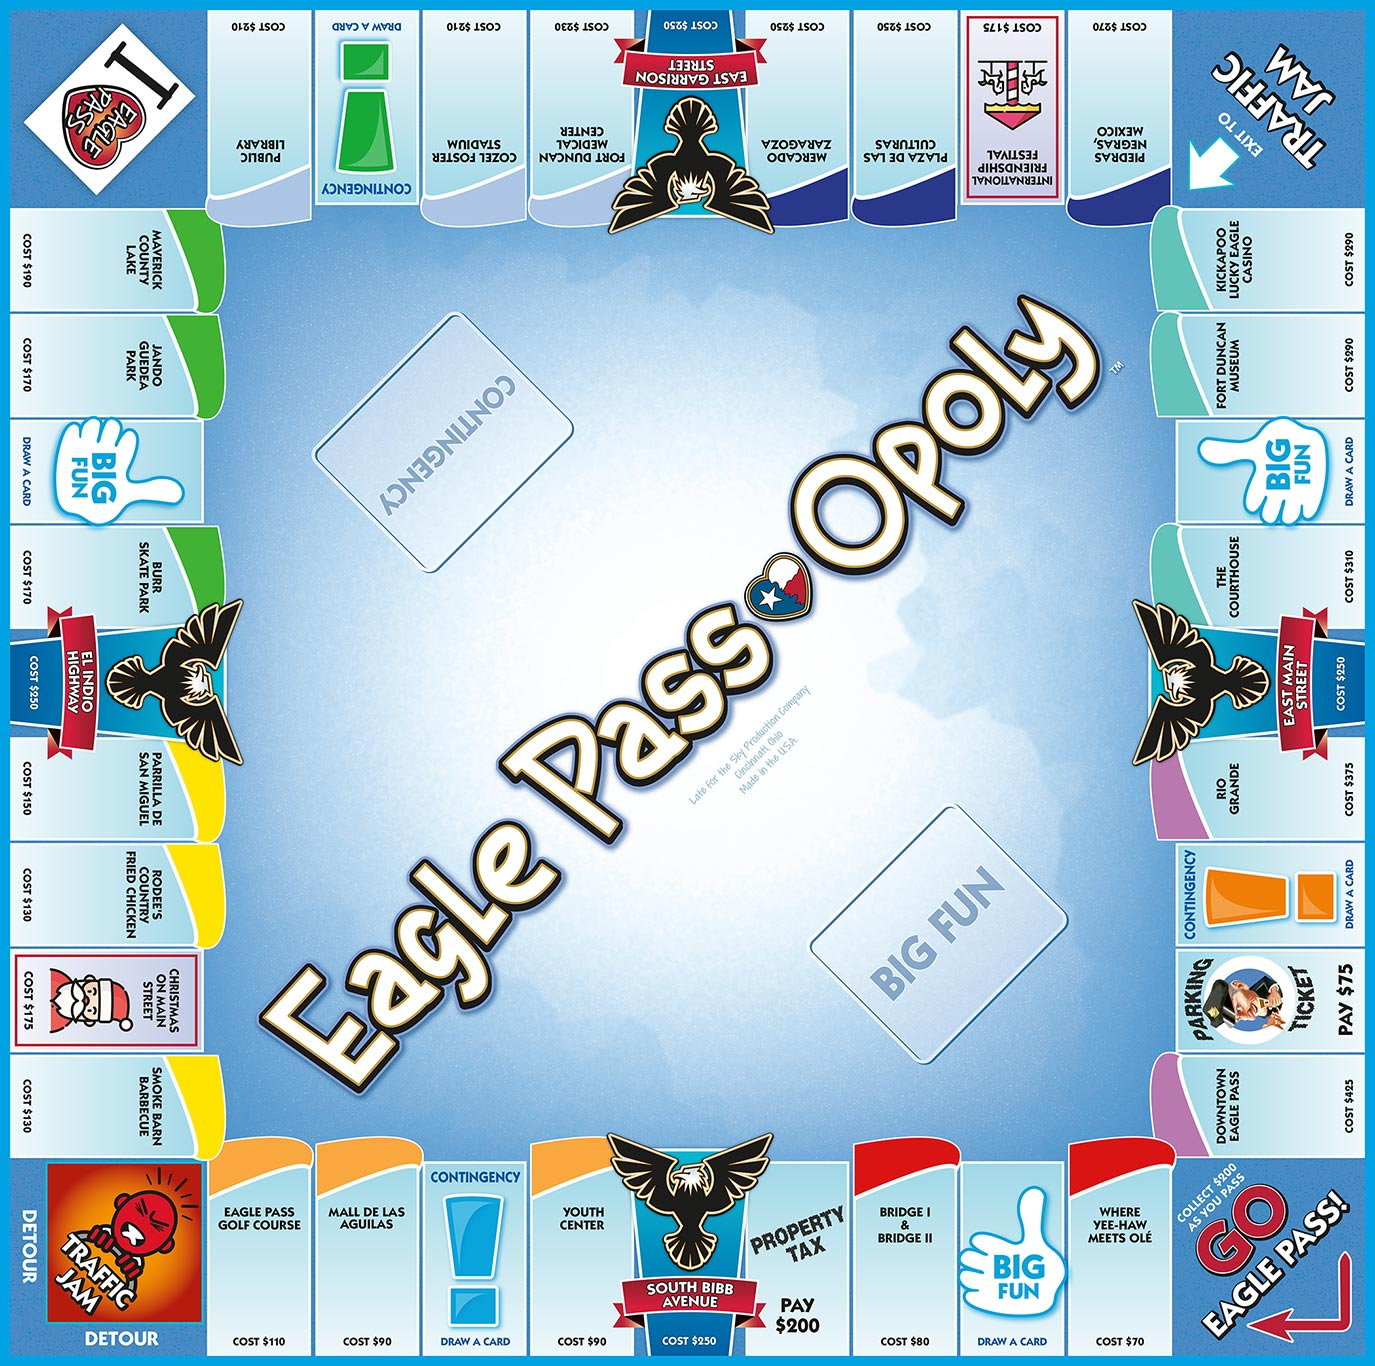 EAGLE PASS-OPOLY Board Game